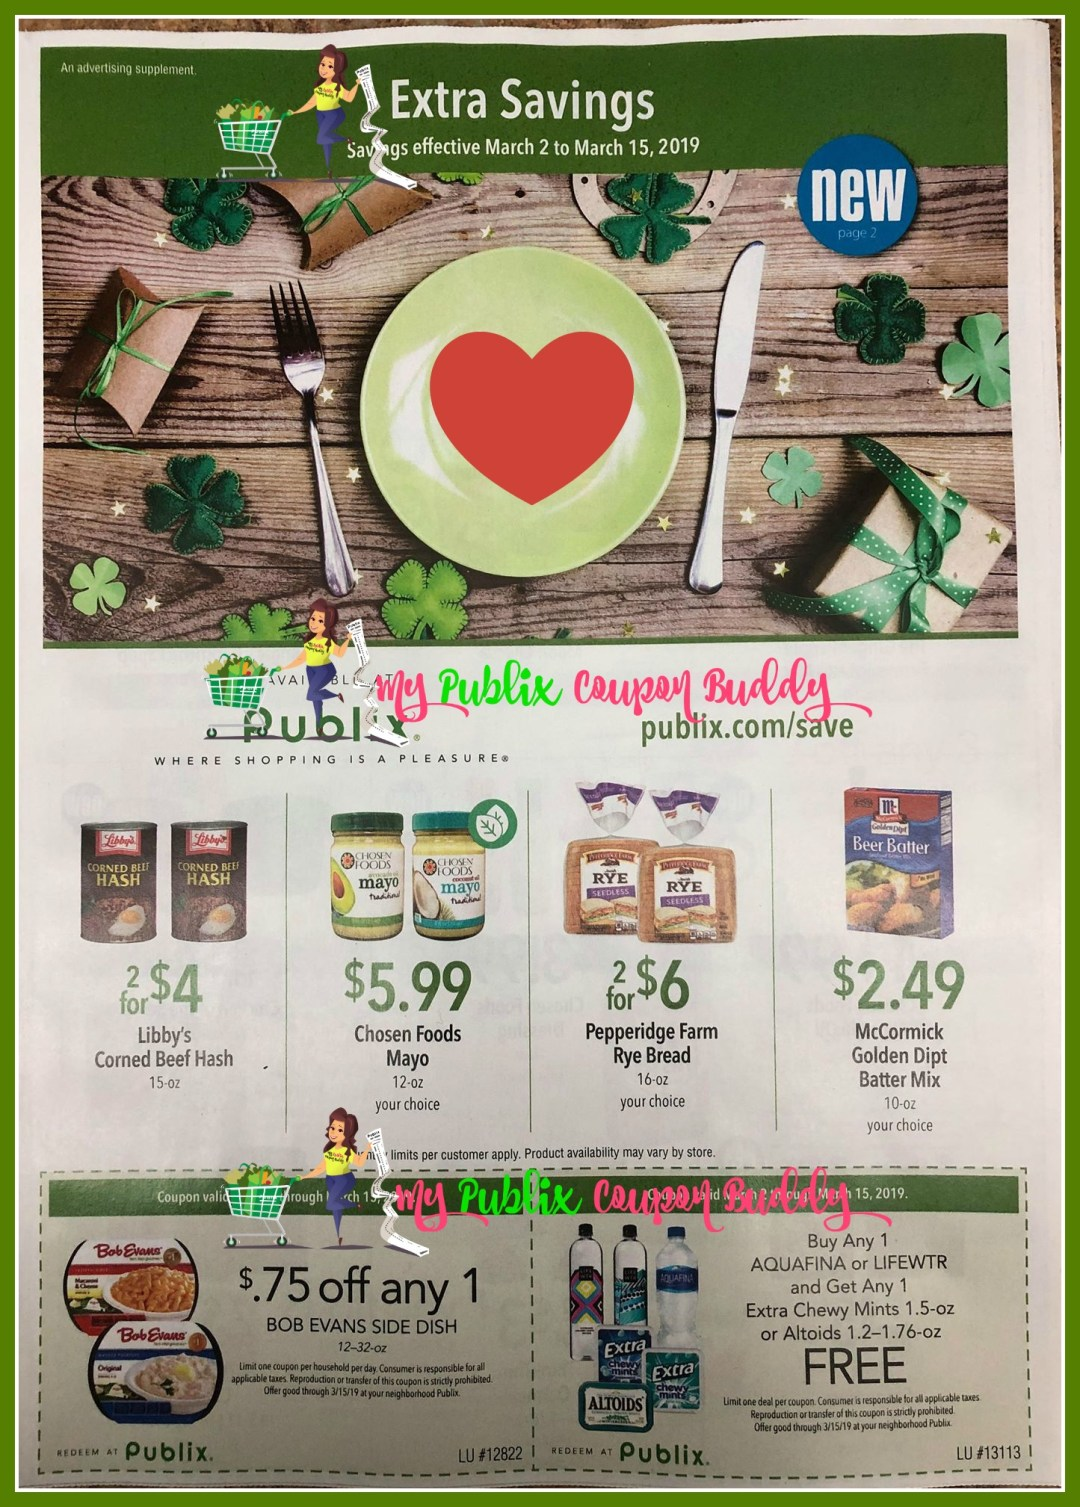 How to Coupon at Publix Week One | My Publix Coupon Buddy